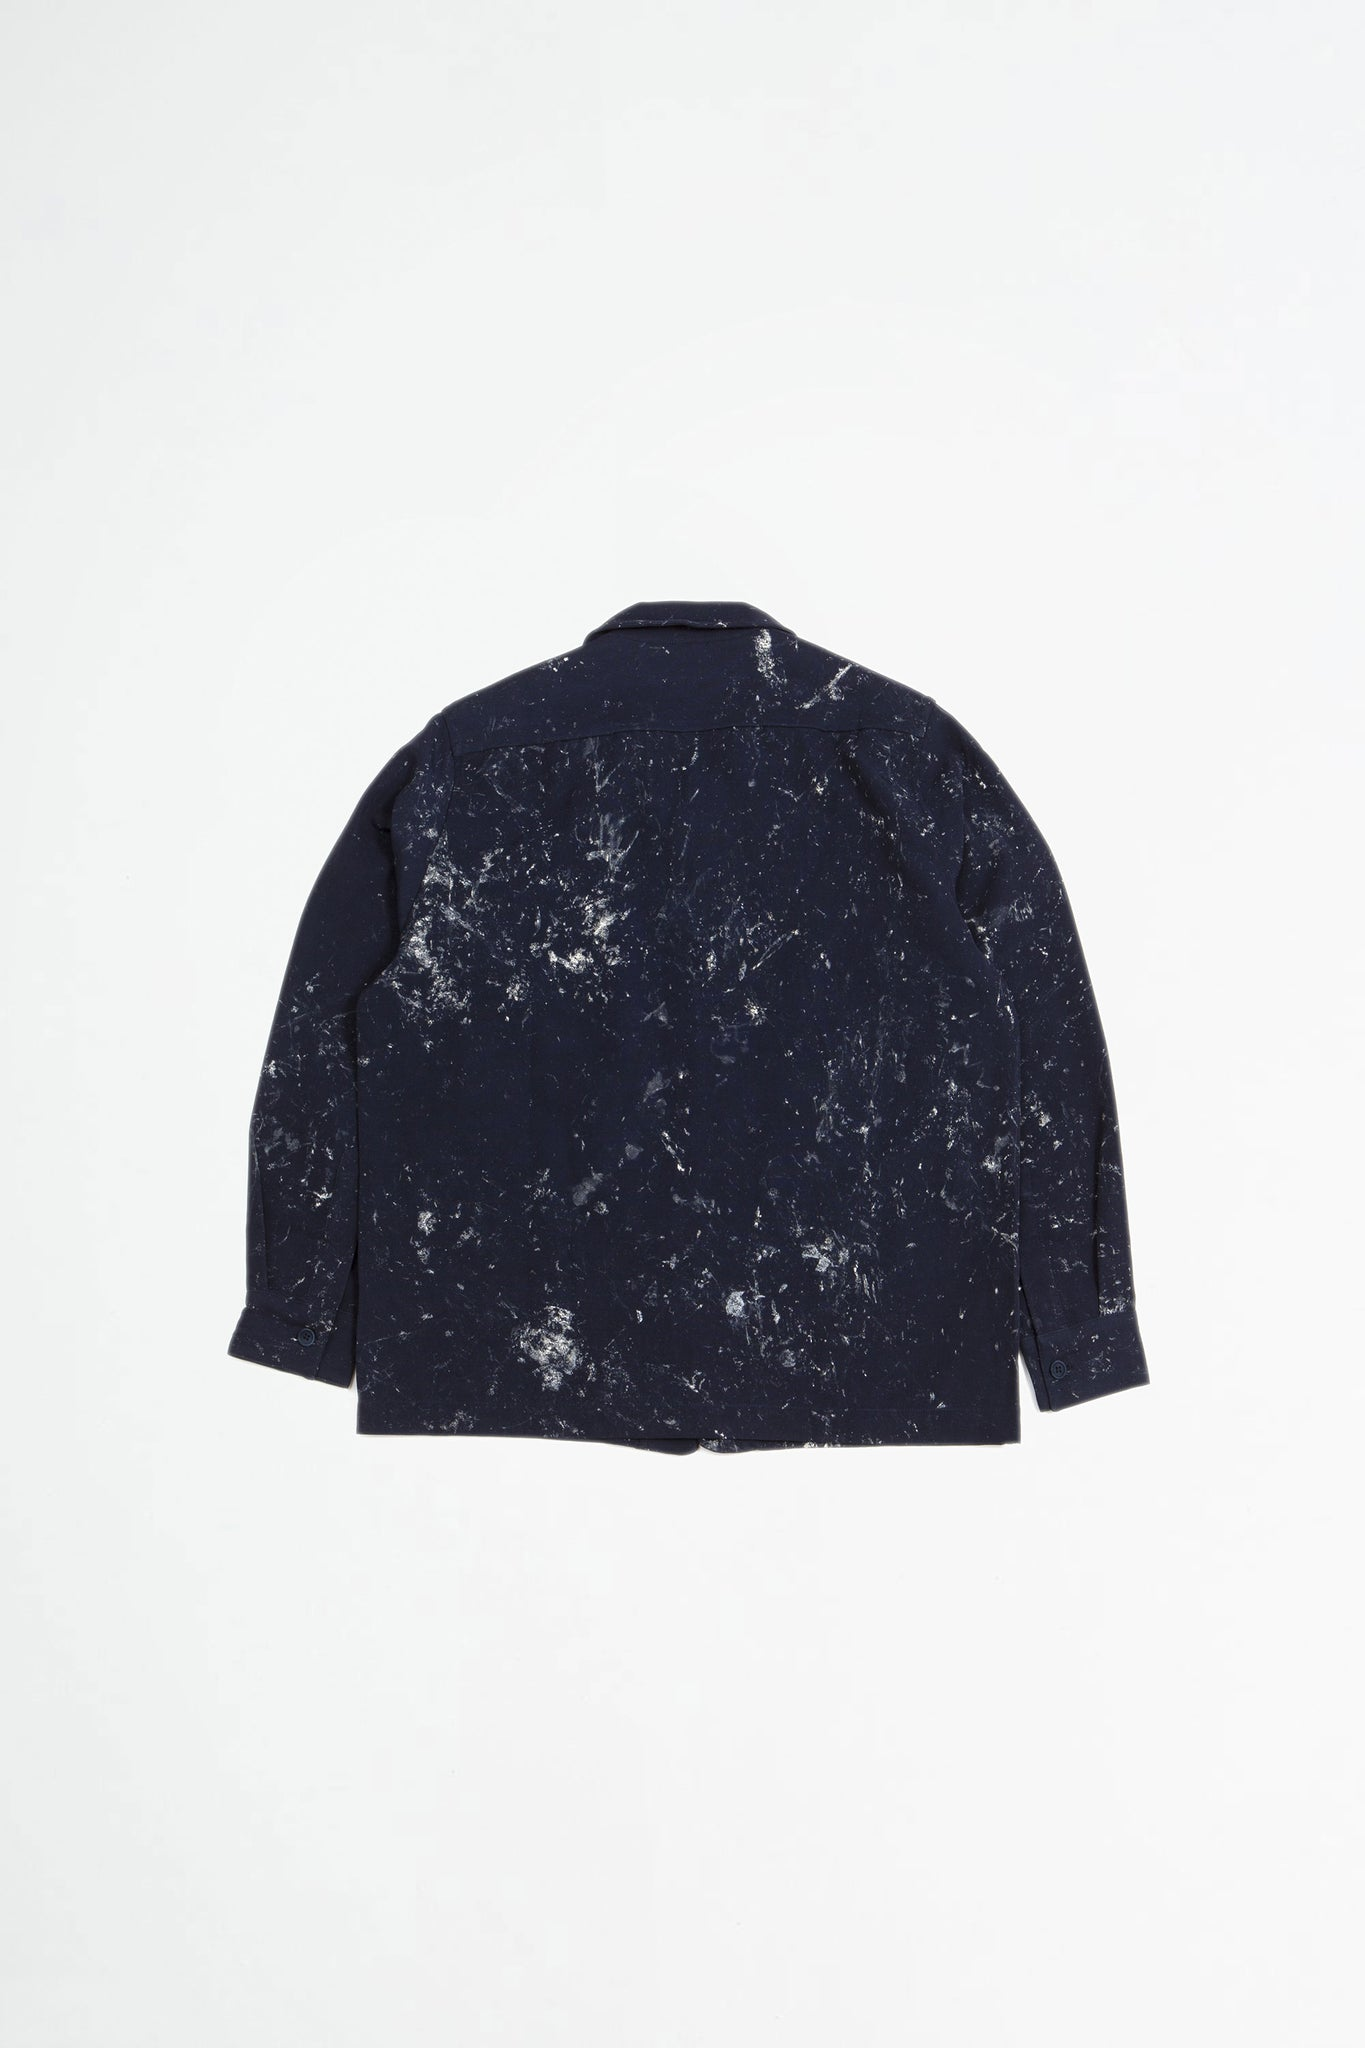 Overshirt boxy handpainted navy